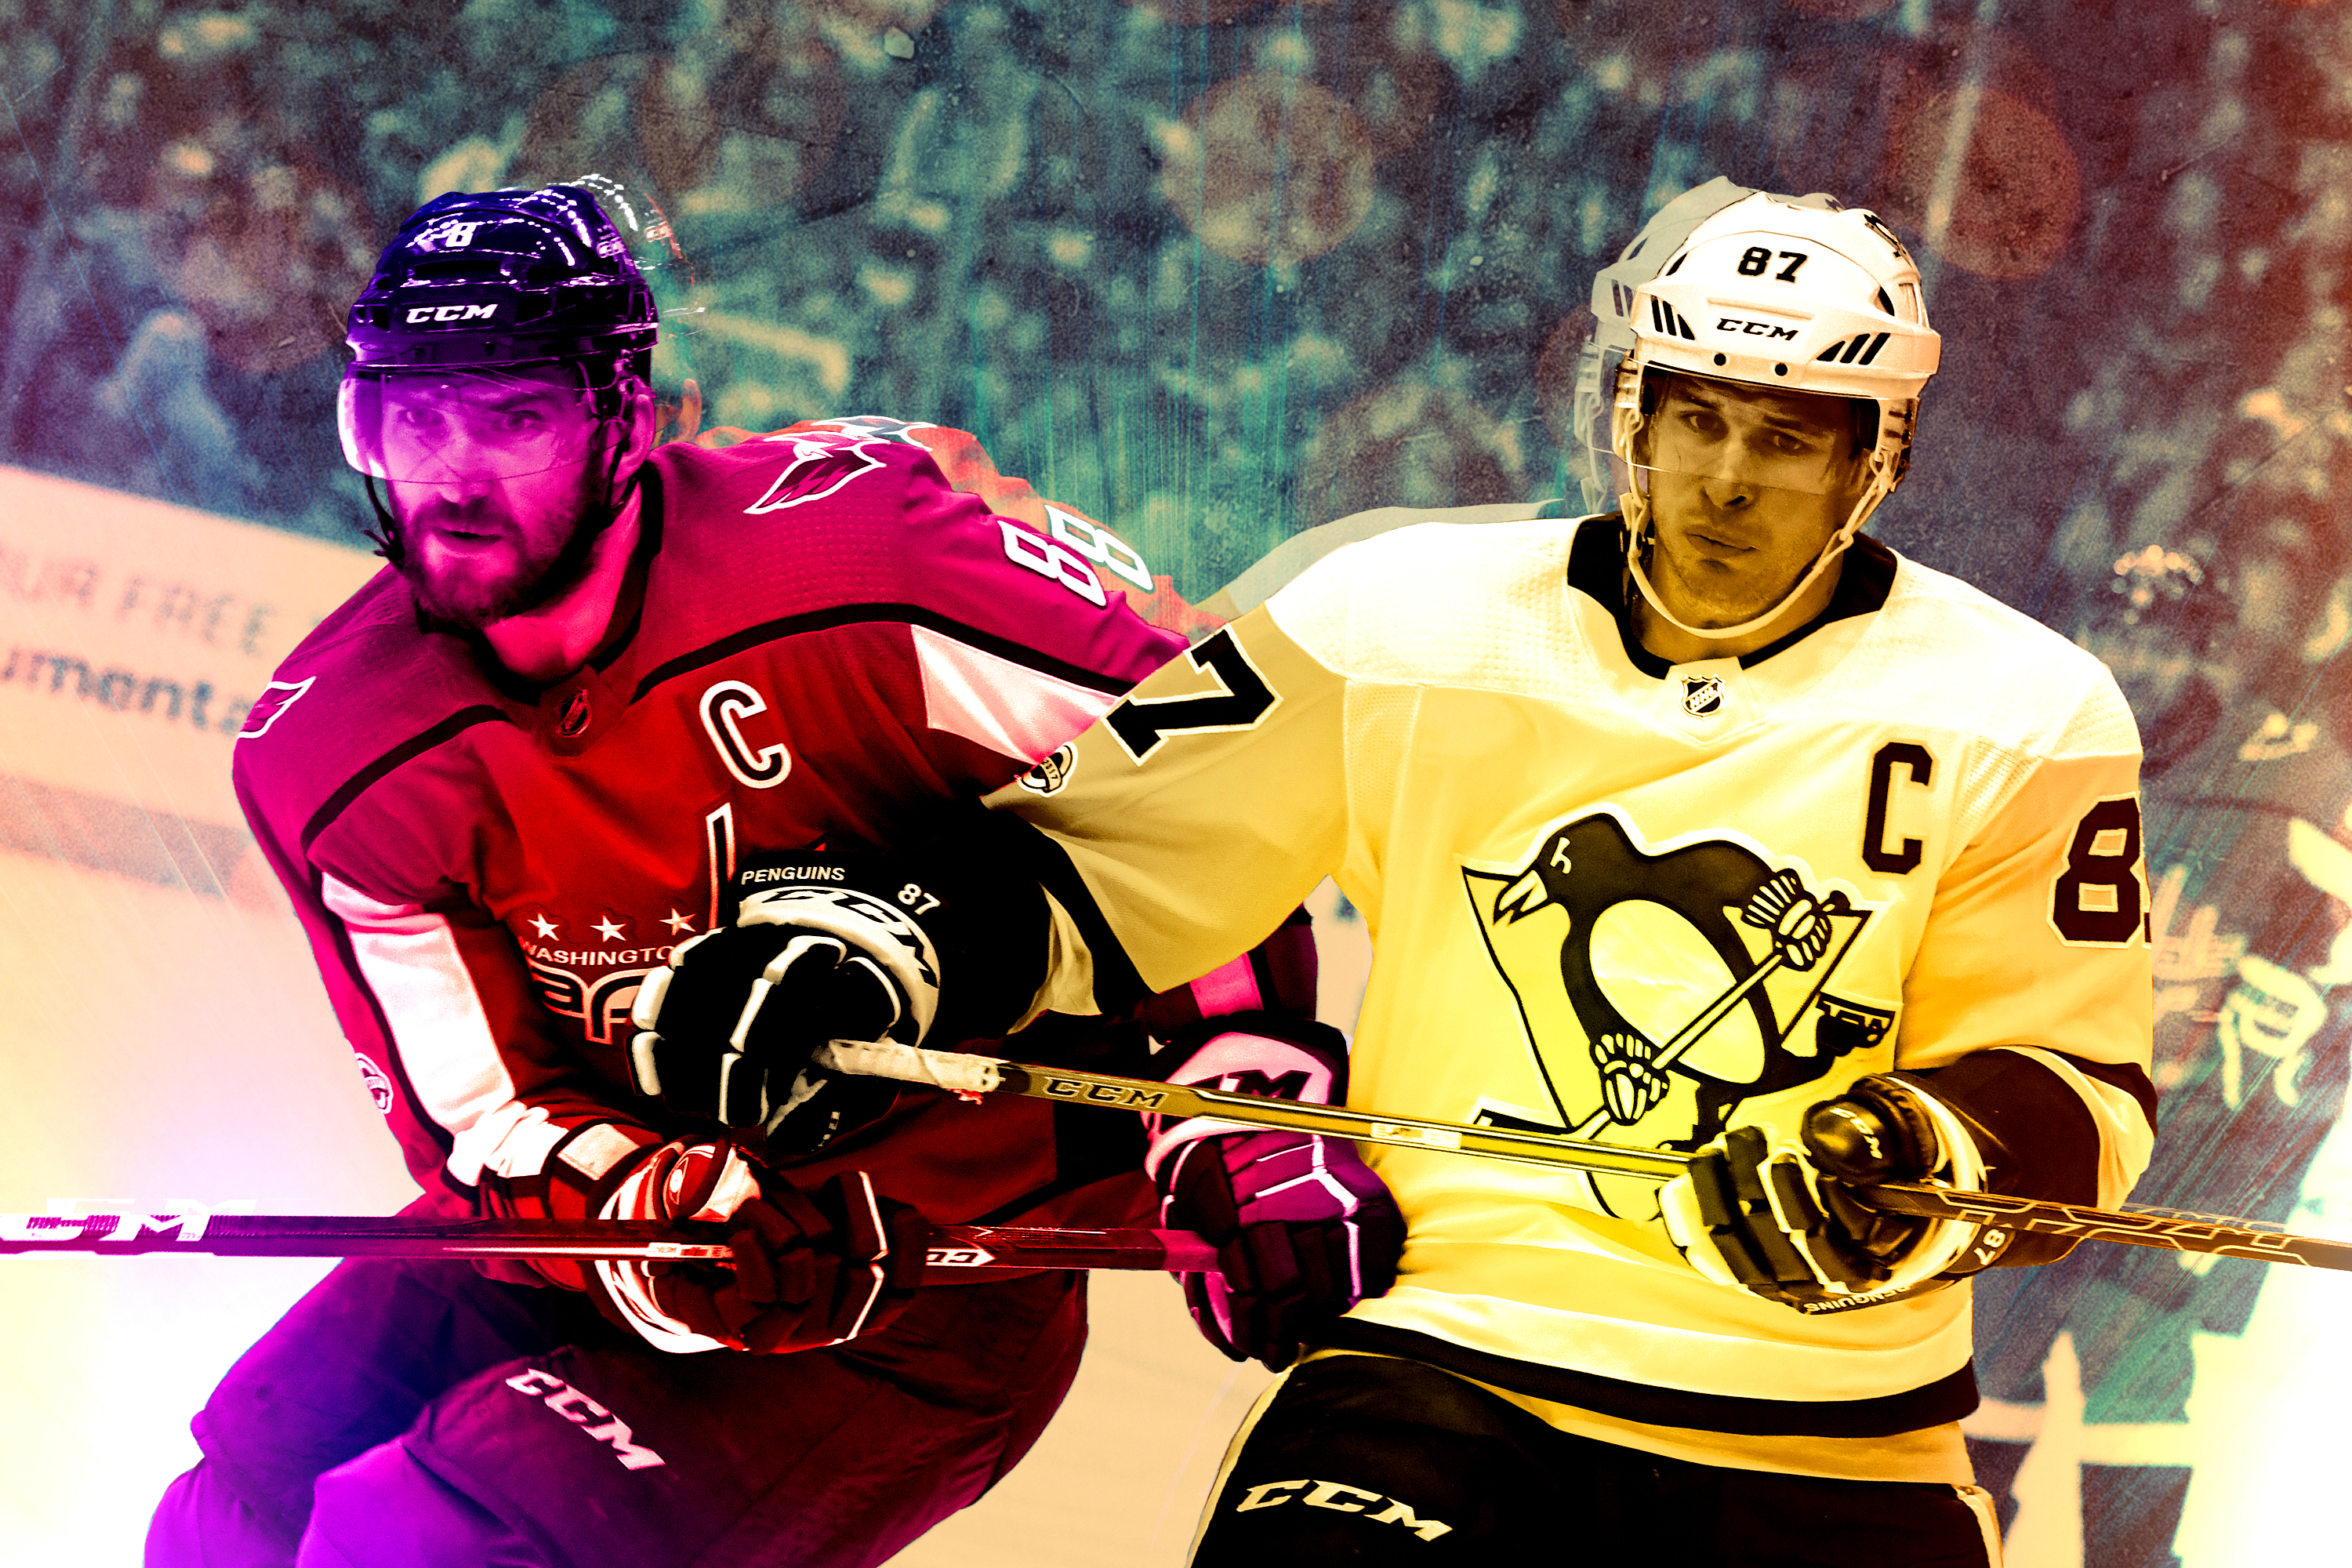 Capitals-Penguins Playoff Series